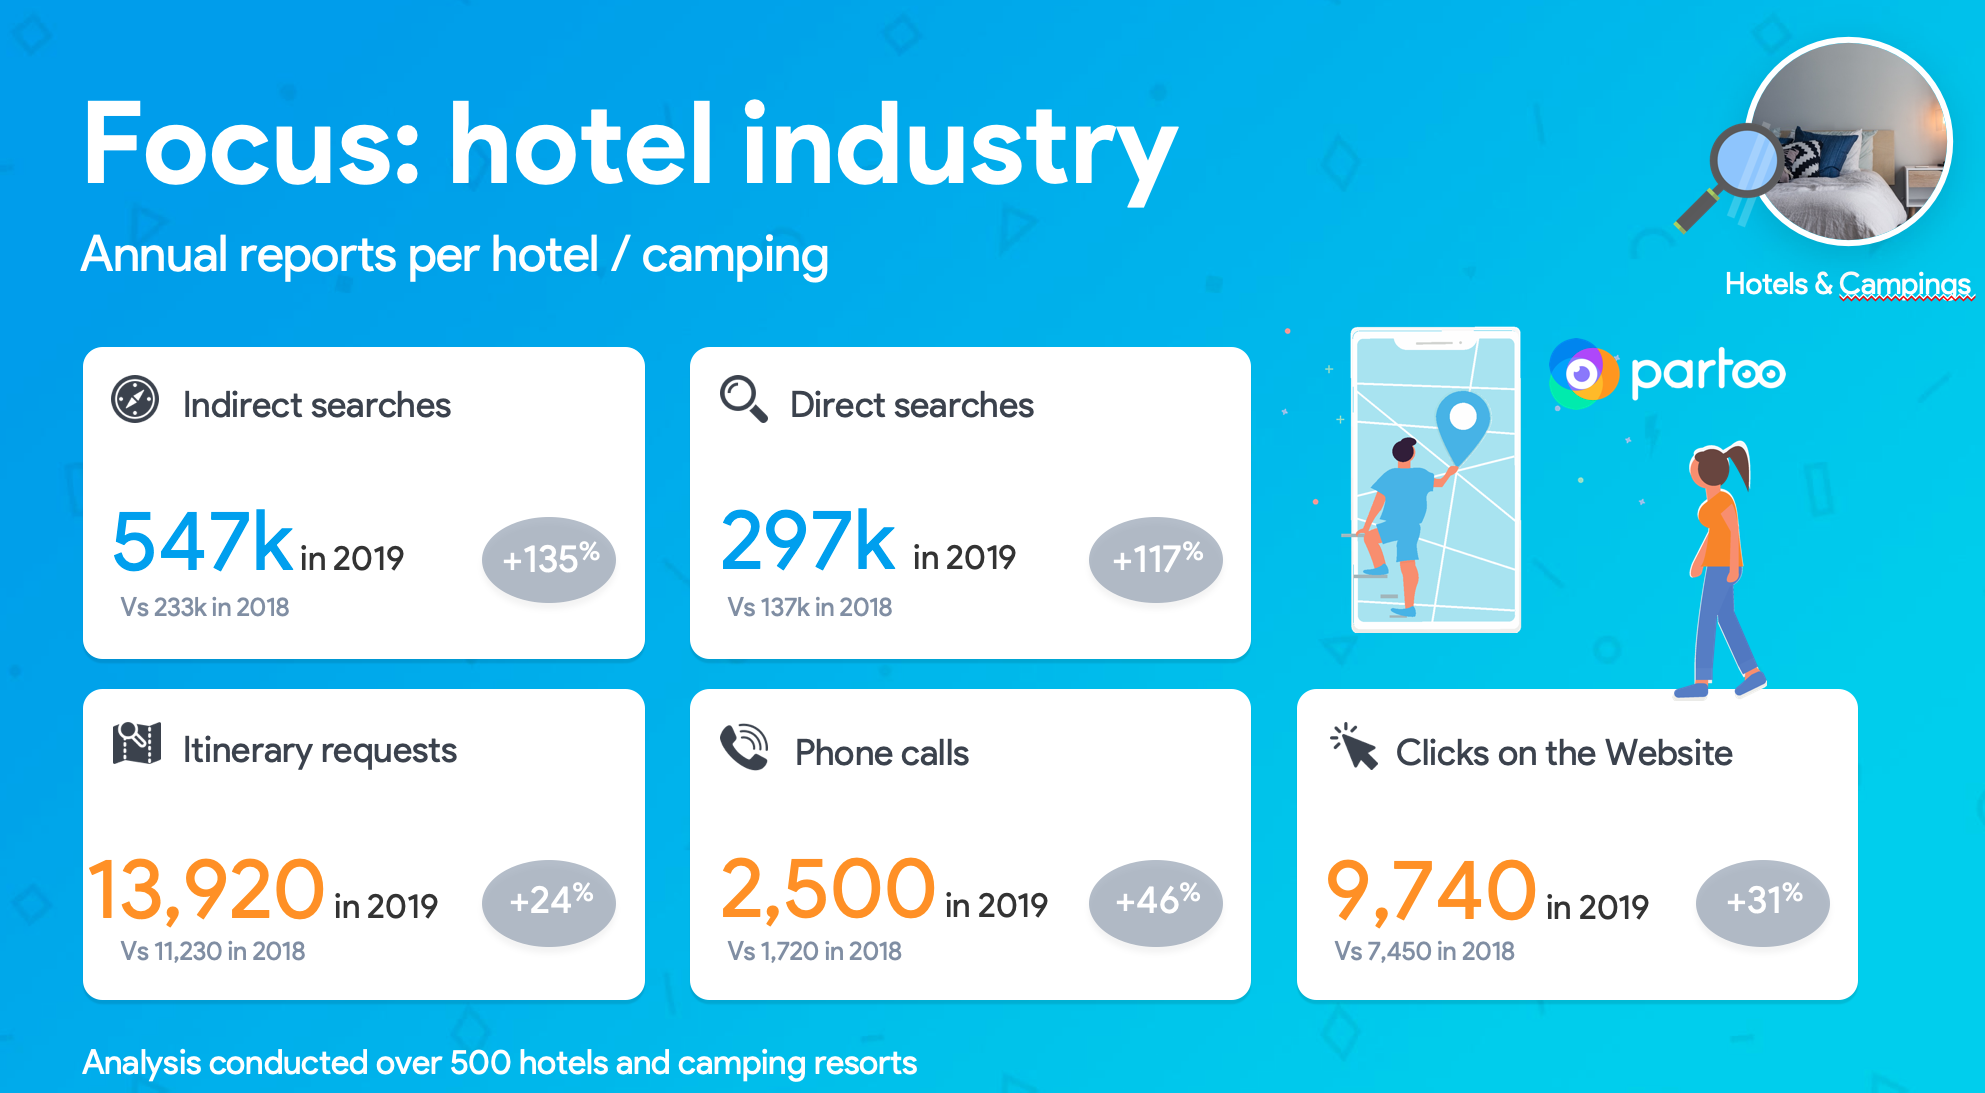 Google My Business data about the hotel industry